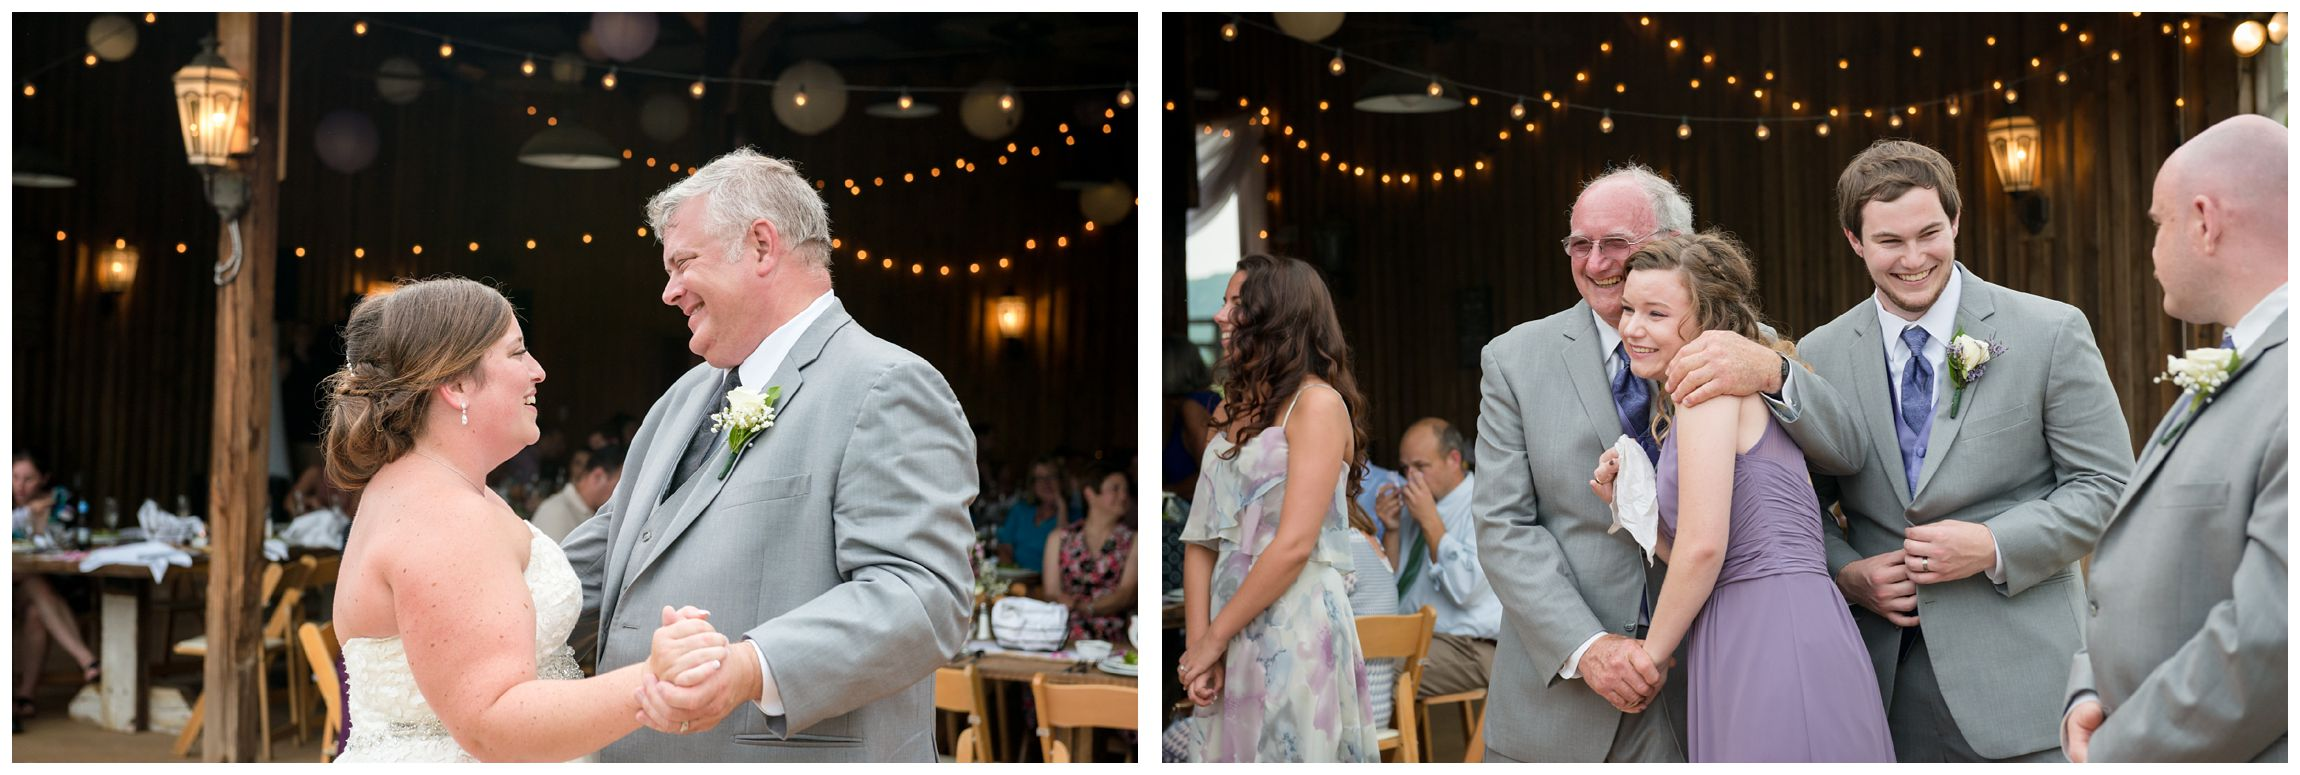 father daughter dance at rustic barn wedding in Virginia